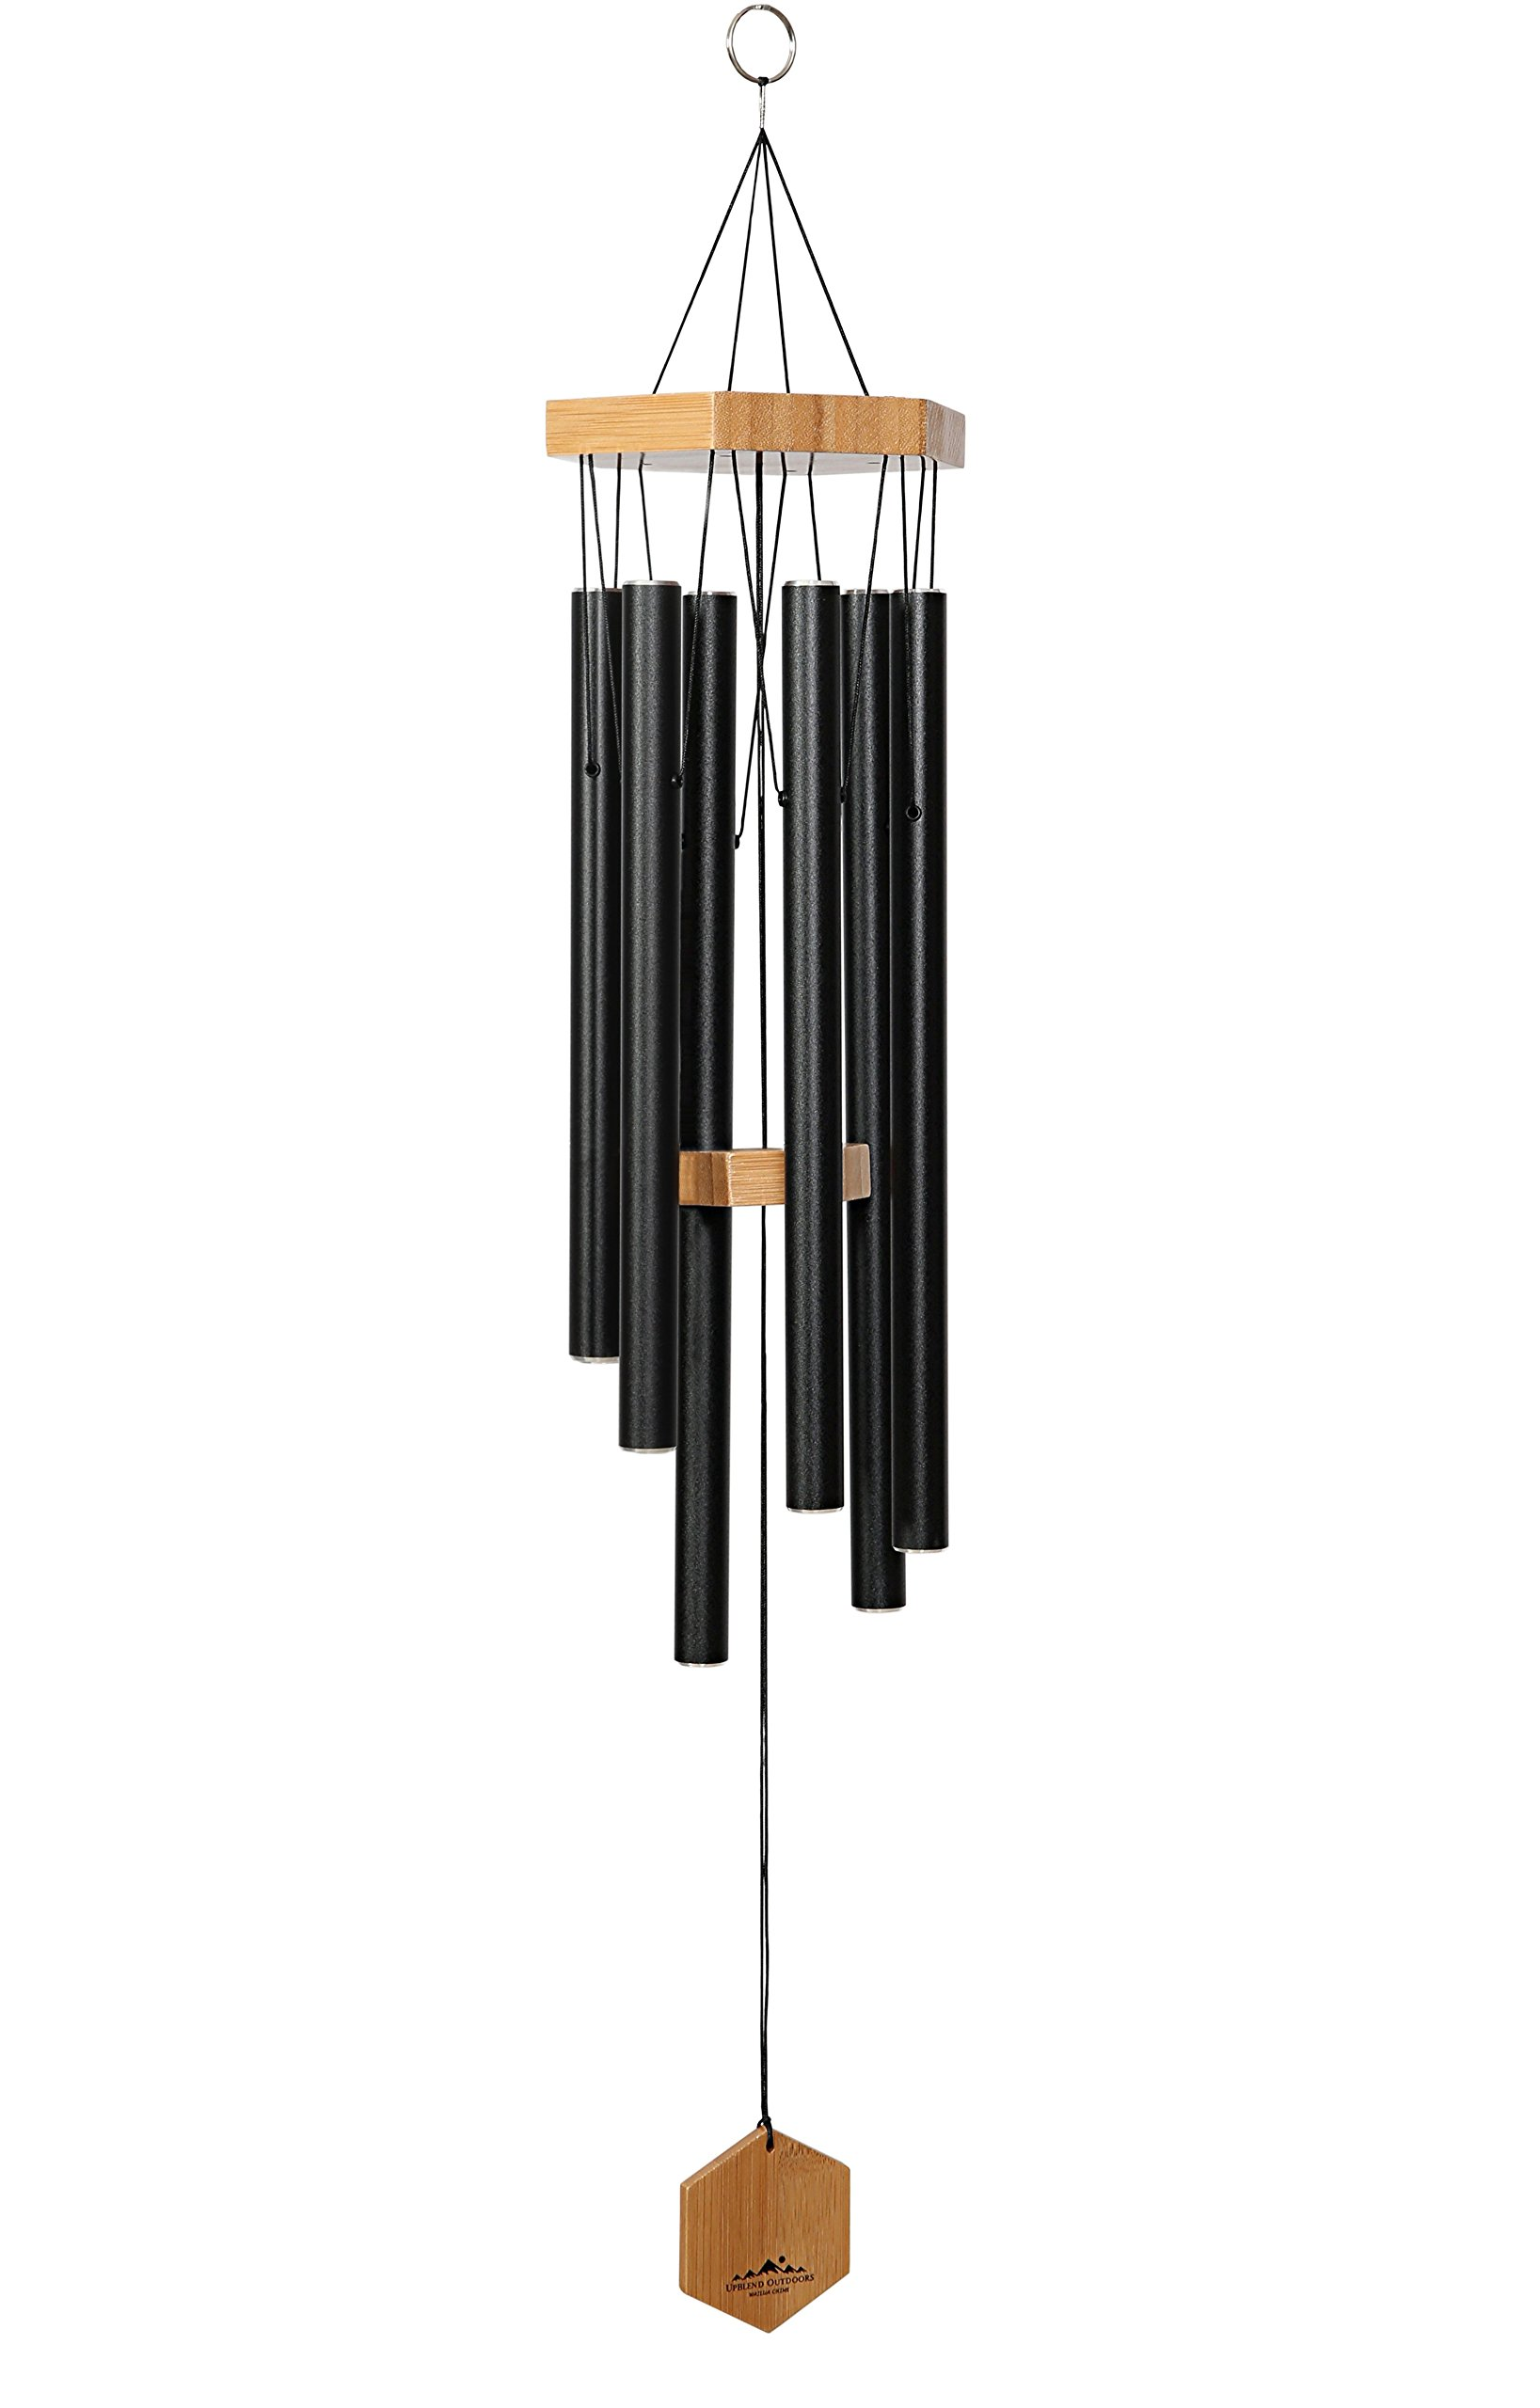 WIND CHIMES FOR PEOPLE WHO LIKE THEIR NEIGHBORS, Soothing Melodic Tones & Solidly Constructed Bamboo/Aluminum Chime, Great as a Quality Gift or to keep for Your own Patio, Porch, Garden, or Backyard. by UpBlend Outdoors